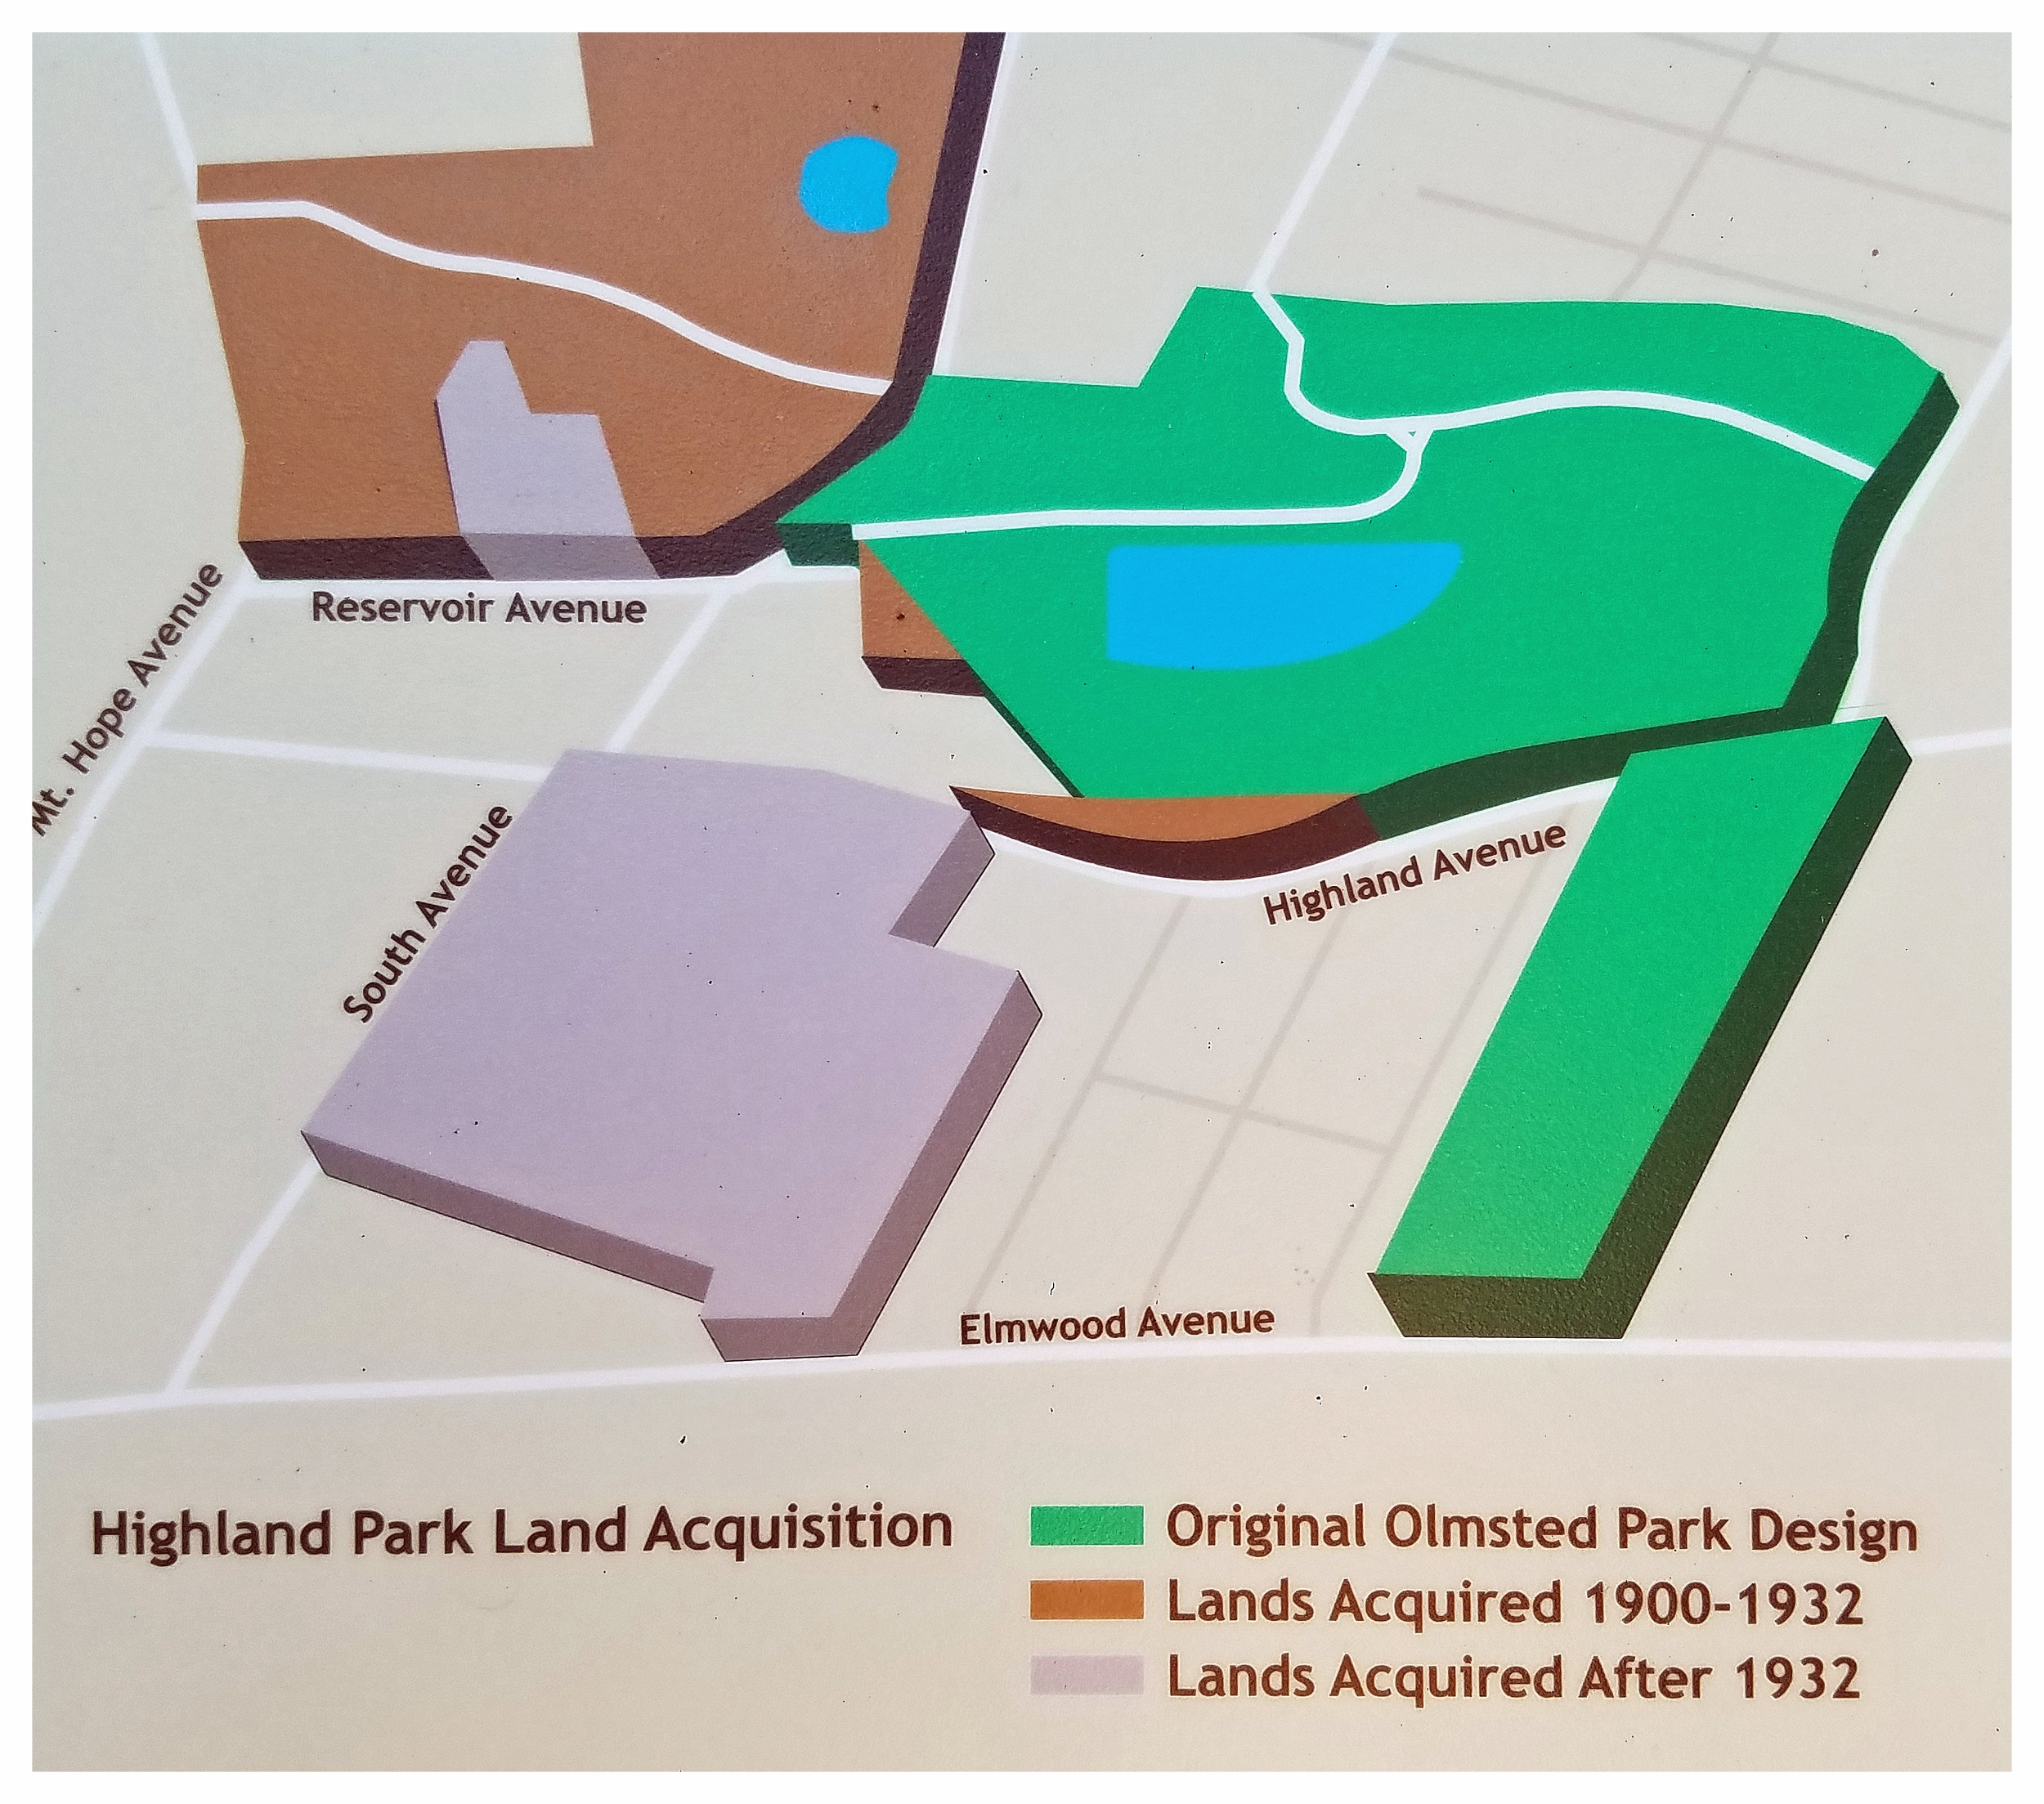 - Over the years, additional lands were acquired to expand the boundaries of Highland Park.